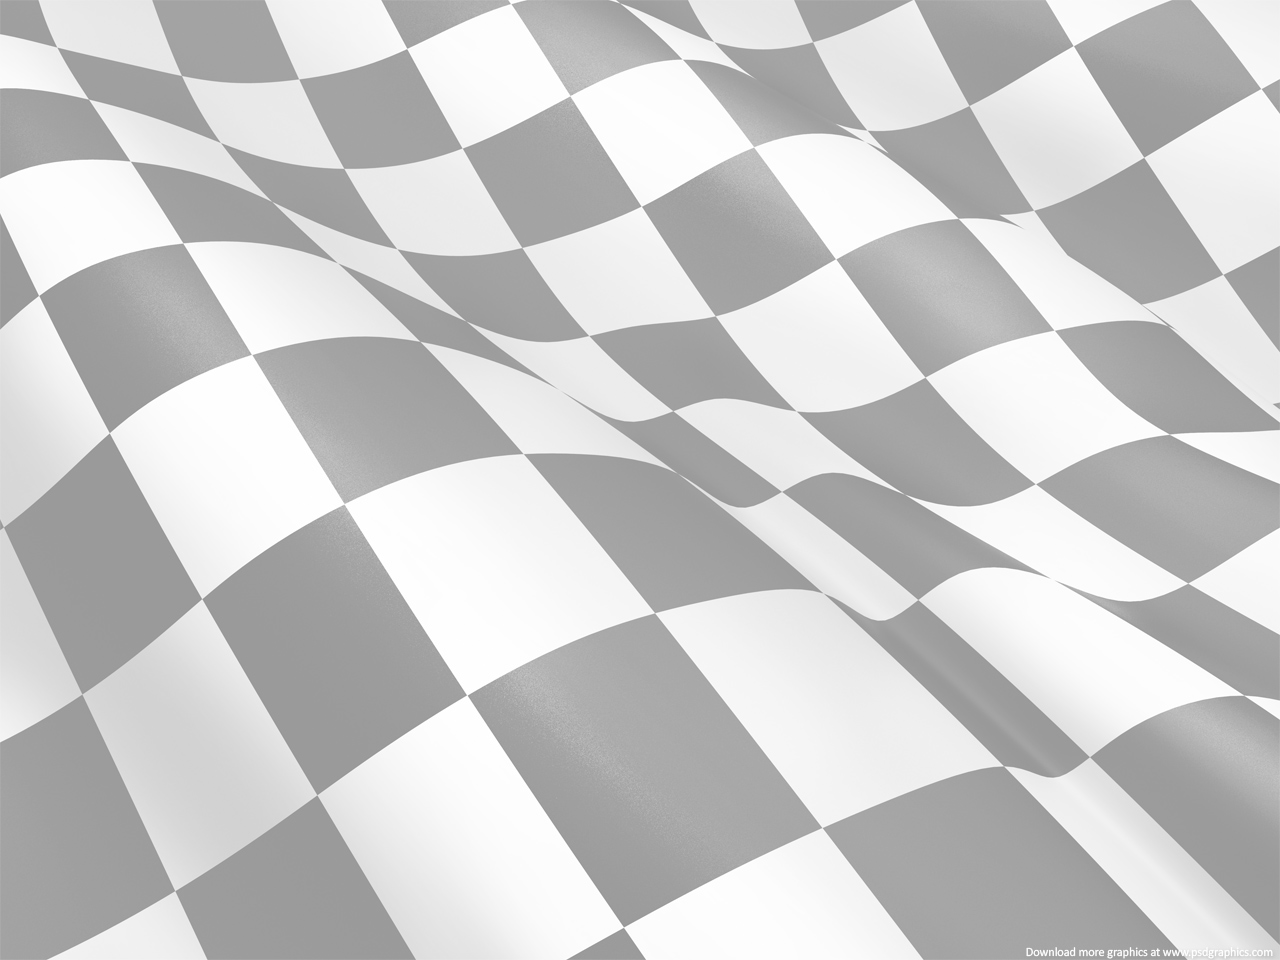 Printable tabletop pinterest background. Race clipart checkered flag